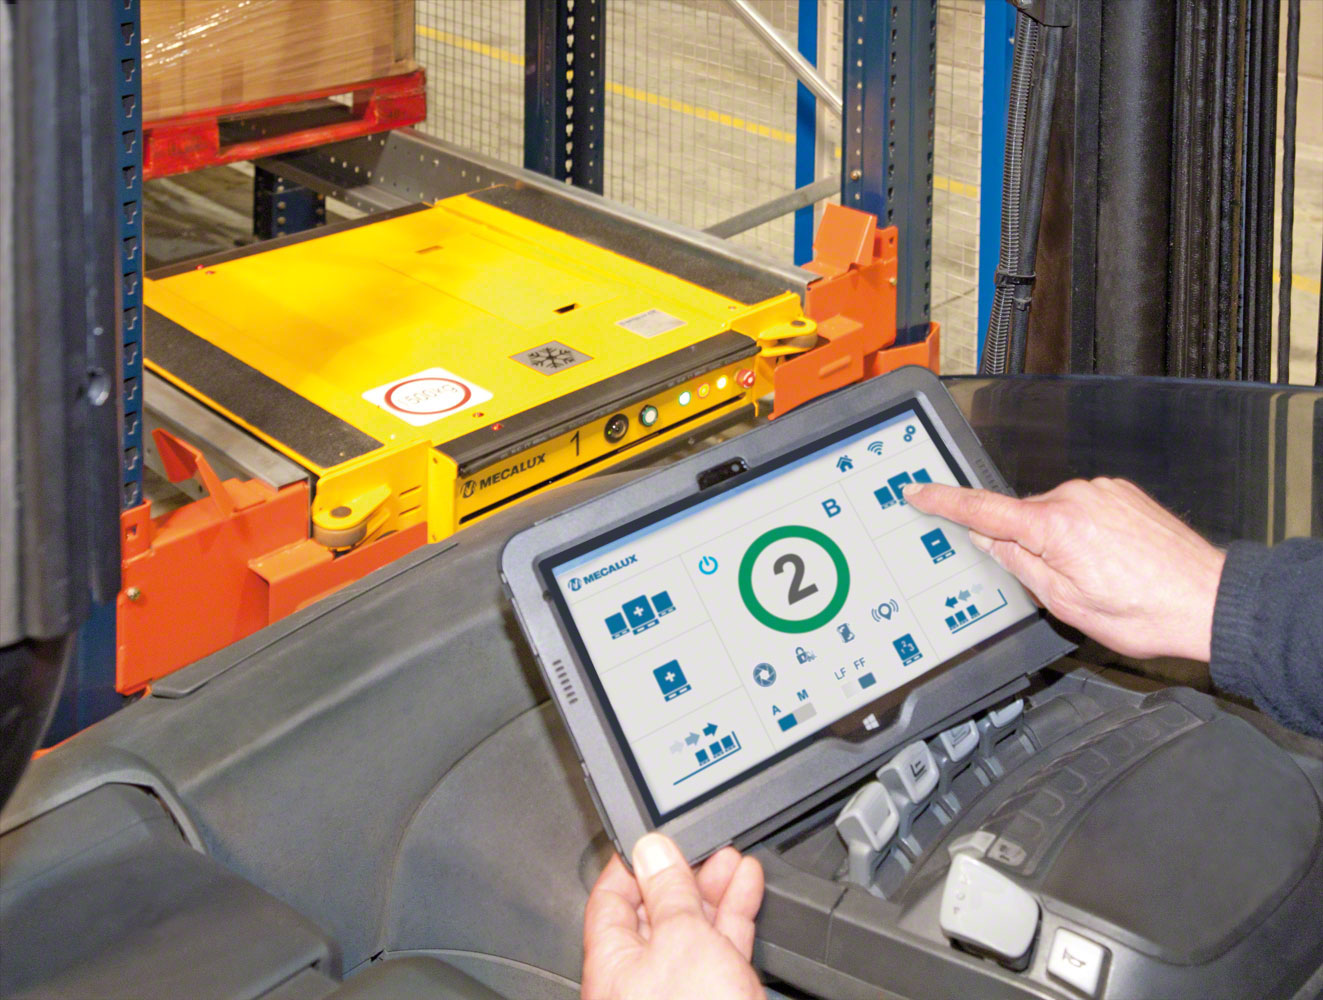 The Wi-Fi control tablet has a very intuitive user interface